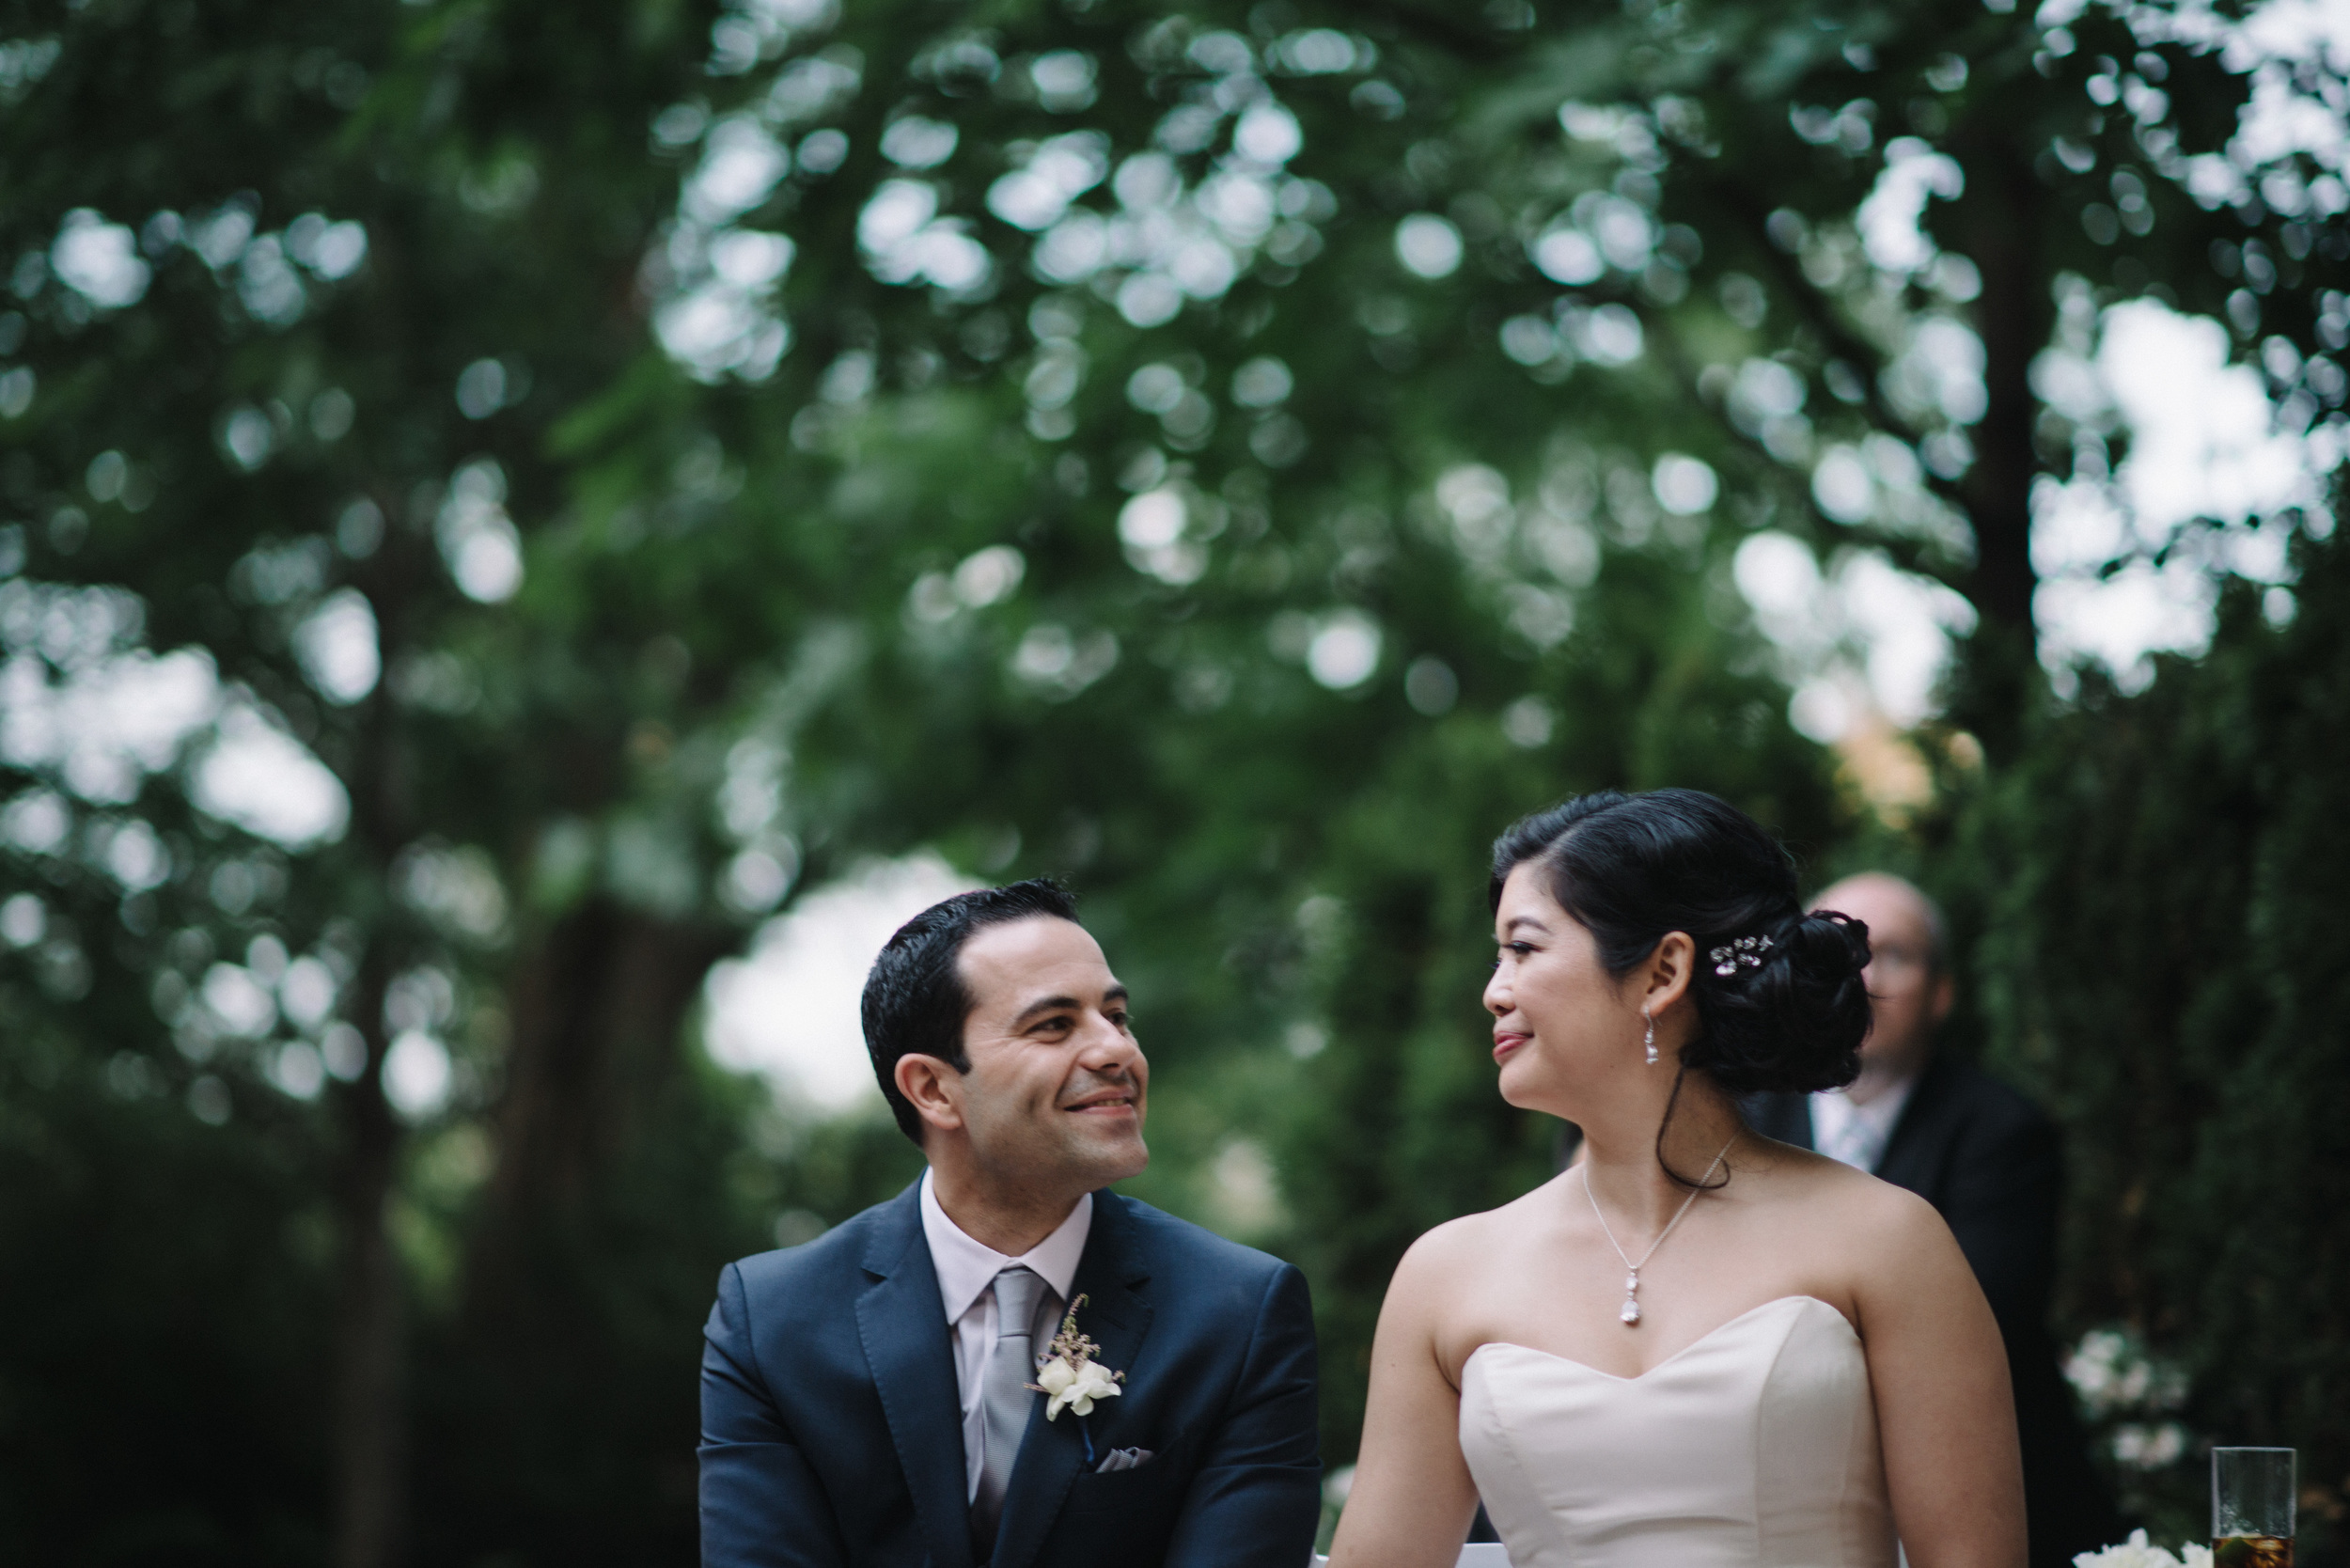 Happy bride and groom - photo by Brian Batista Bettencourt of 3B Photography